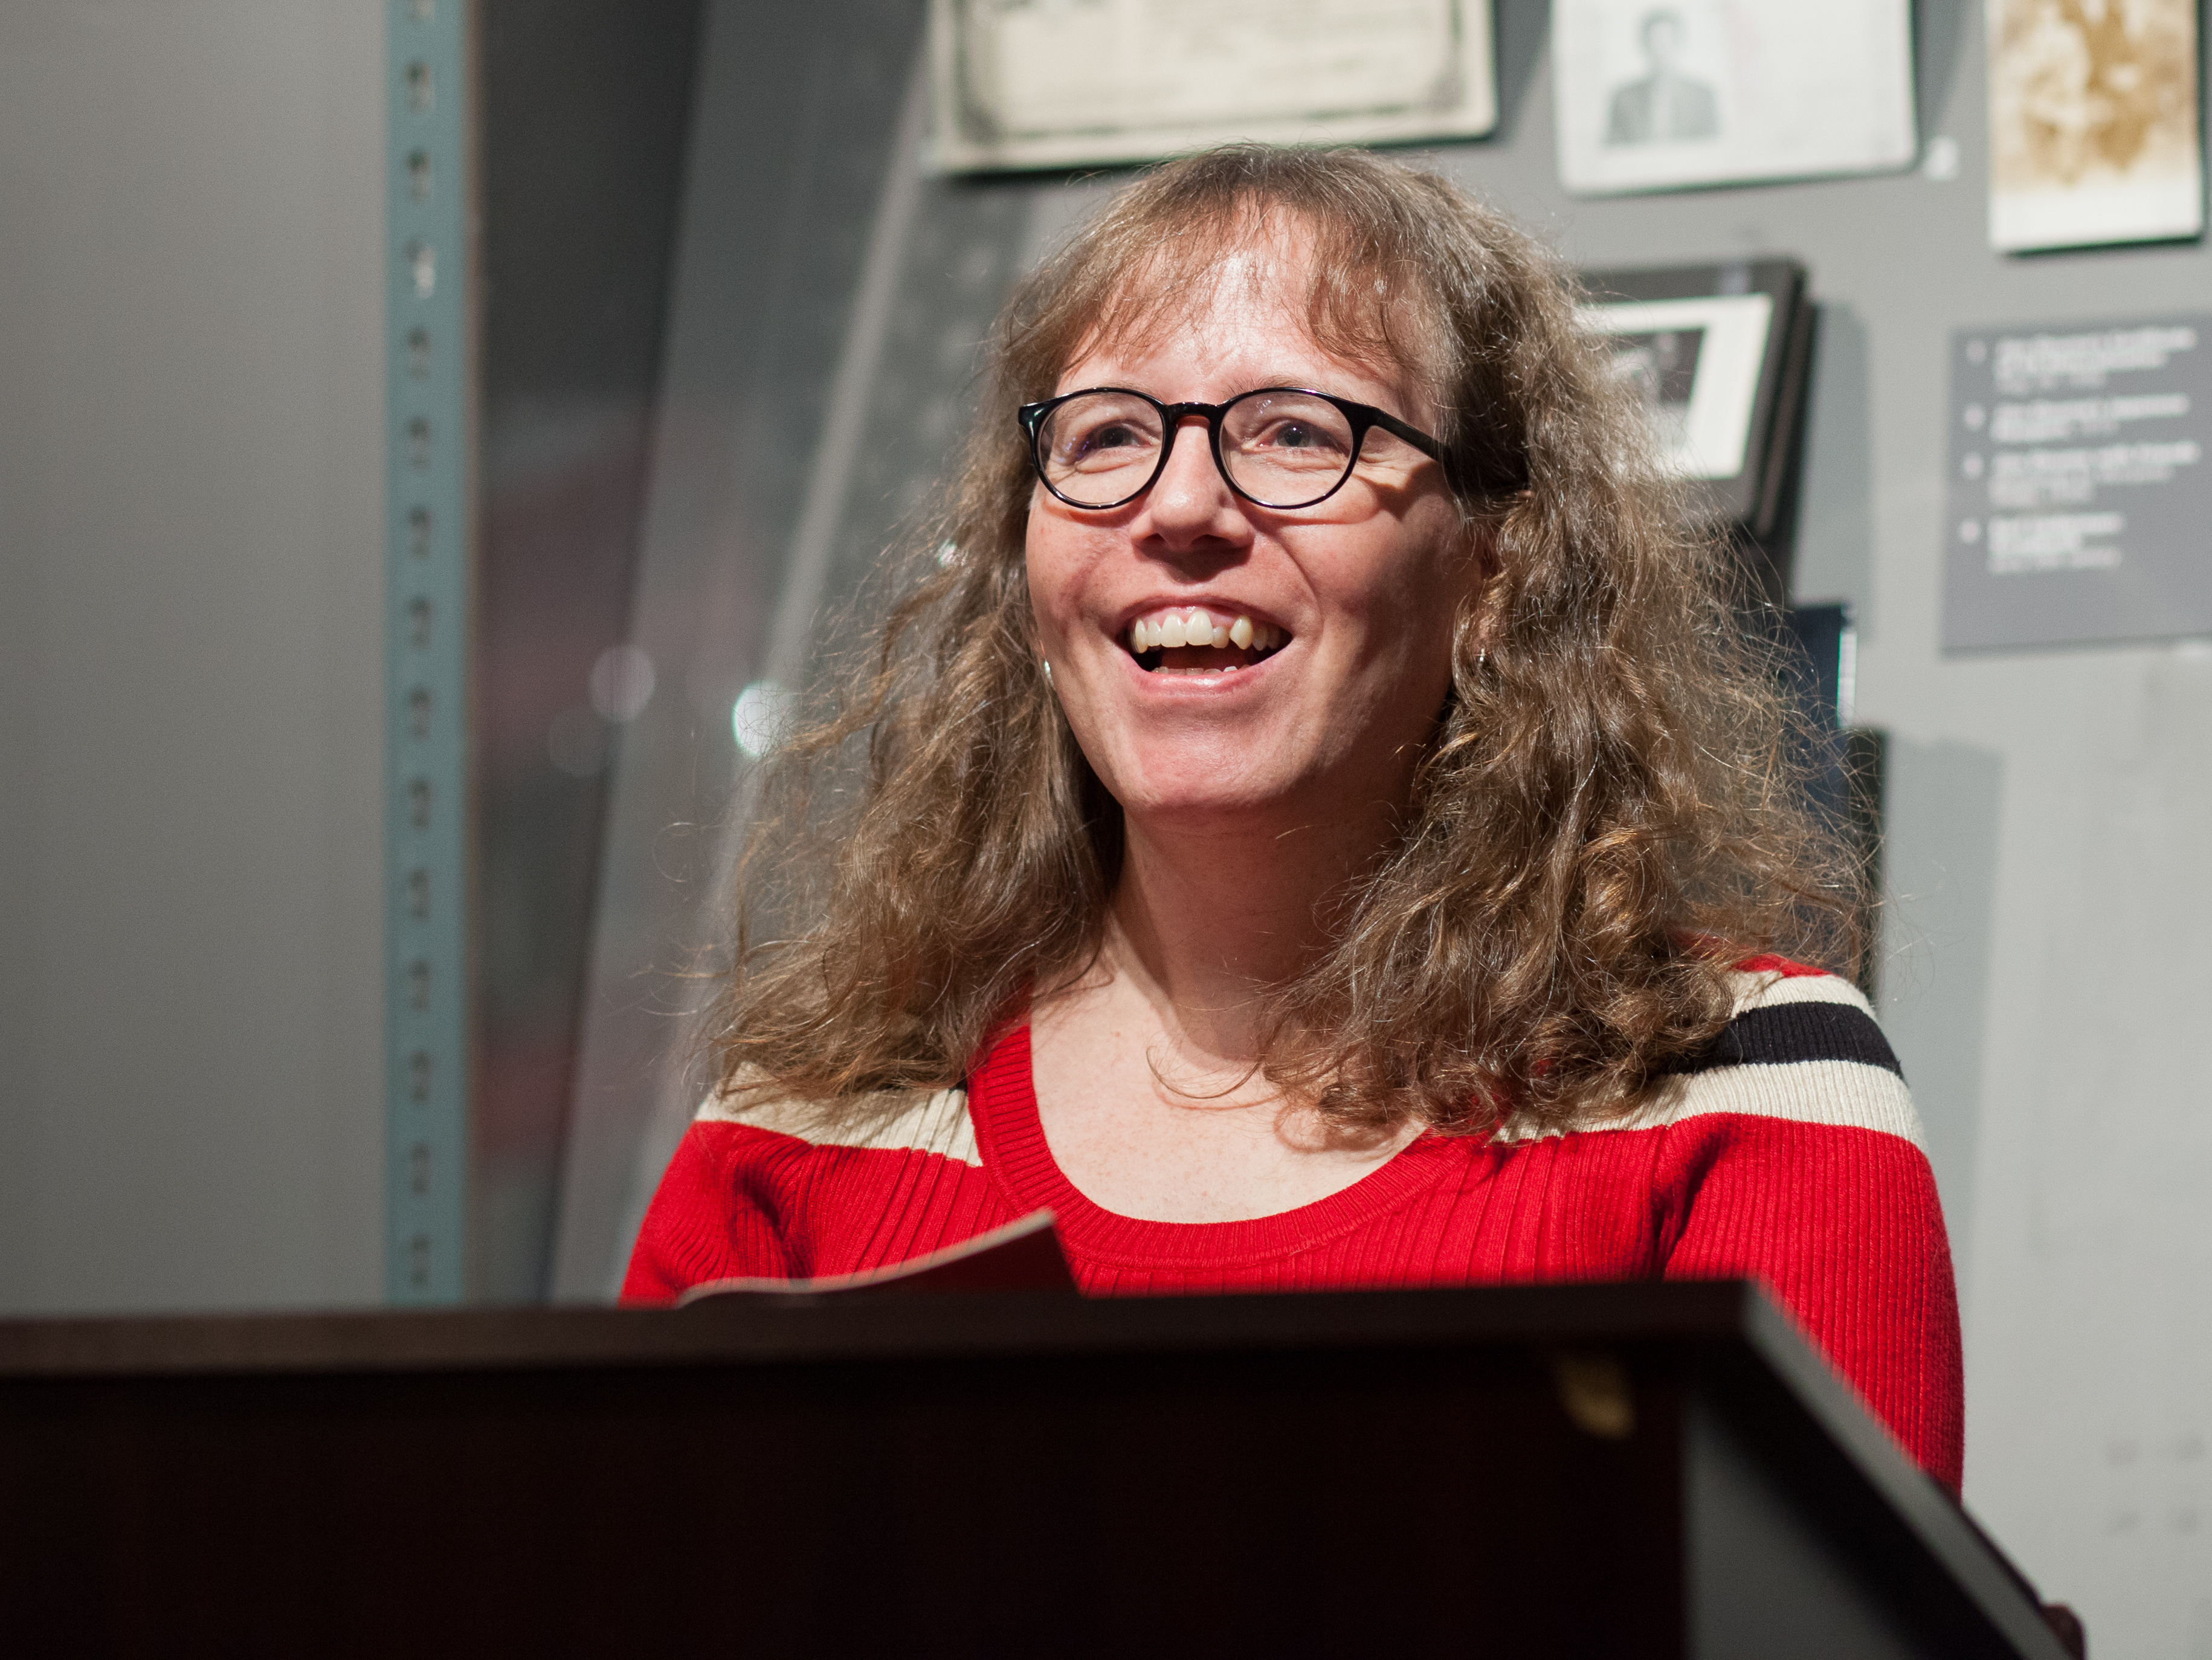 Julia Serano speaks at the GLBT History Museum in San Francisco for the launch of the second edition of her book, Whipping Girl in March 2016.